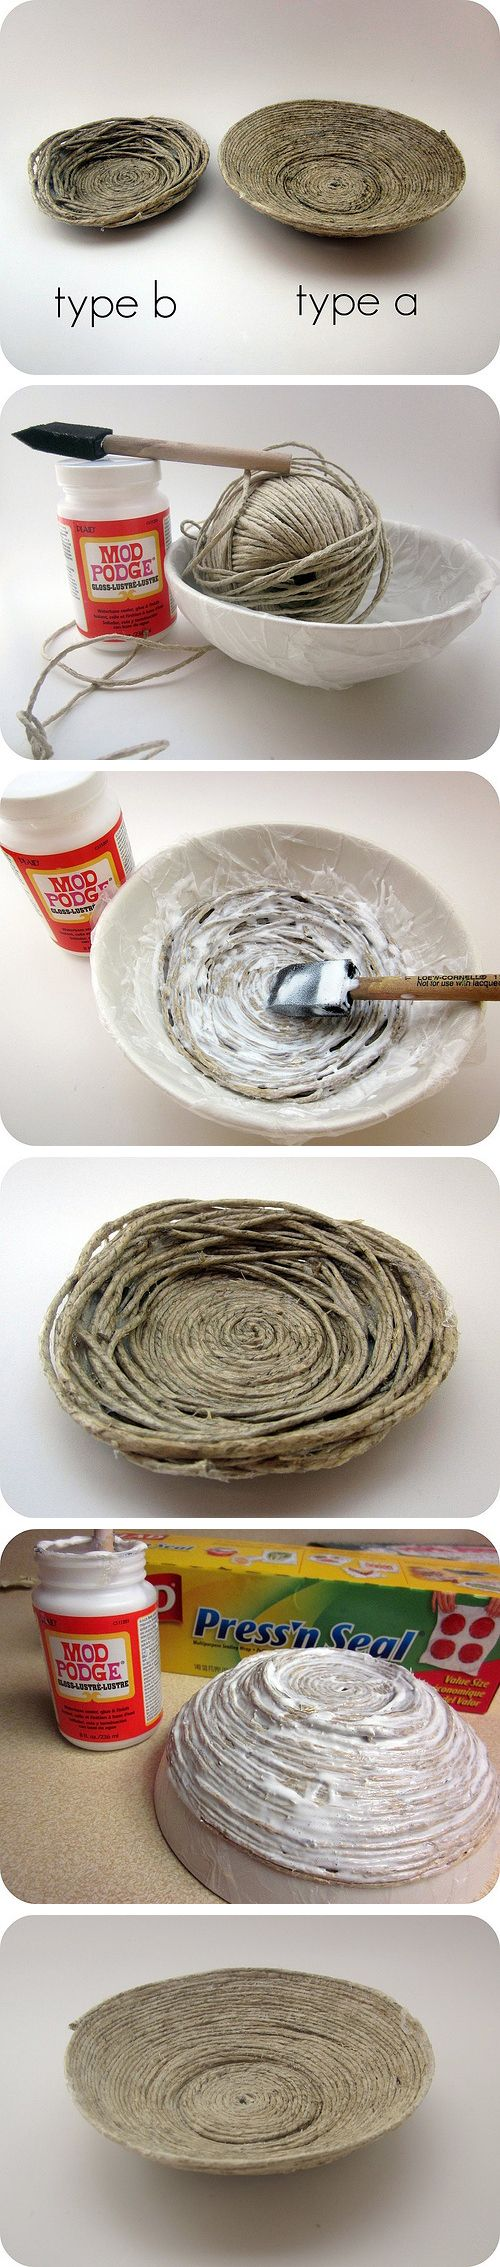 string bowl or nest- tutorial... Use as a mold for concrete. But, how?